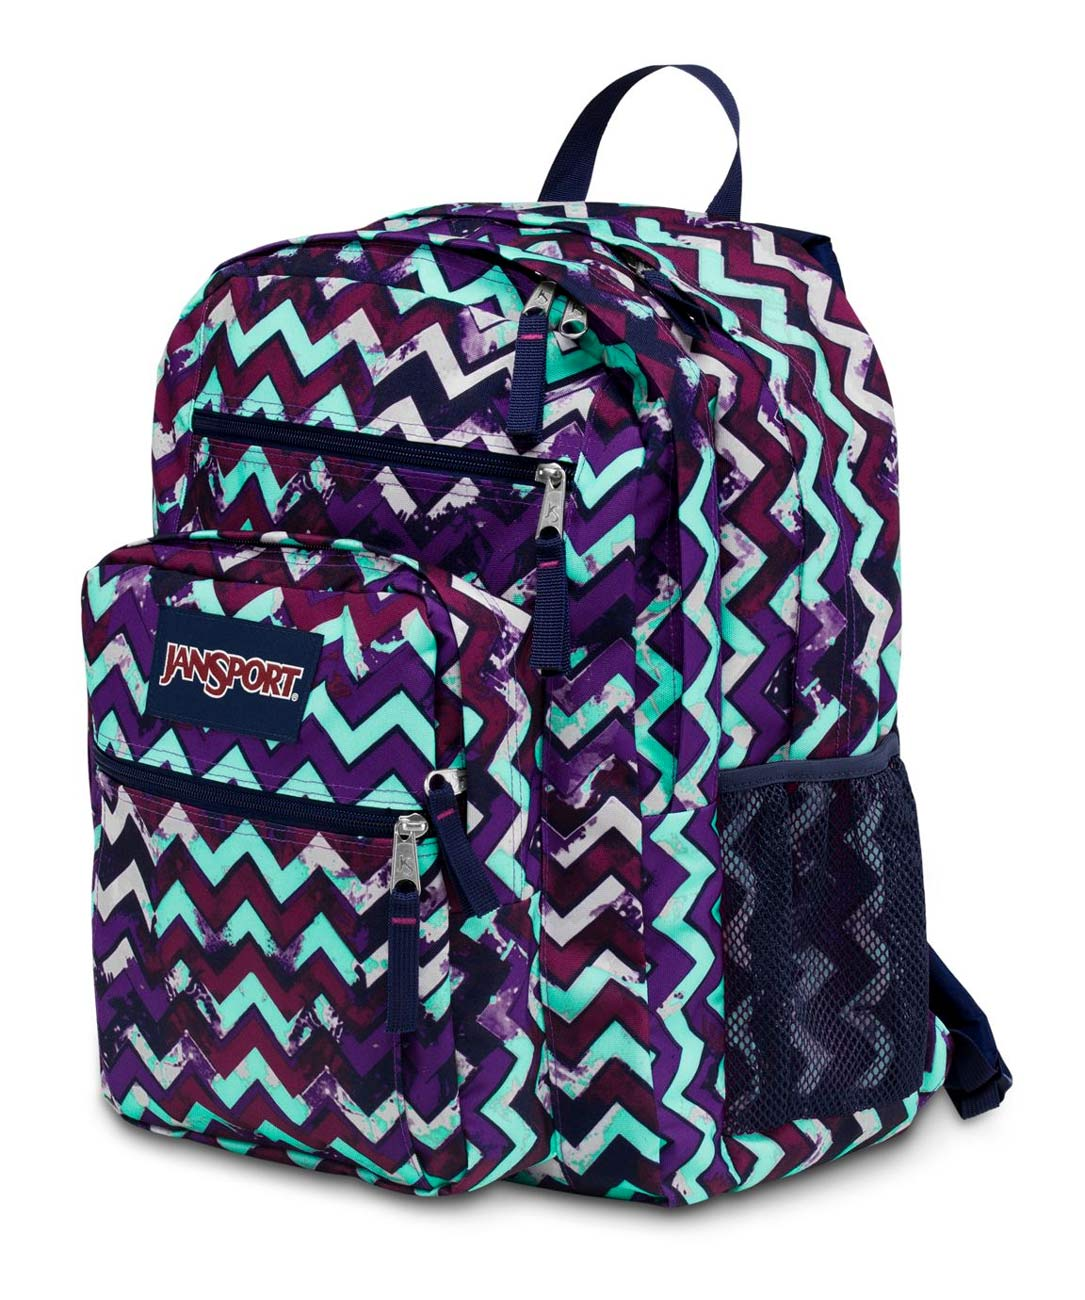 Jansport Big Backpacks rFIoV3YN